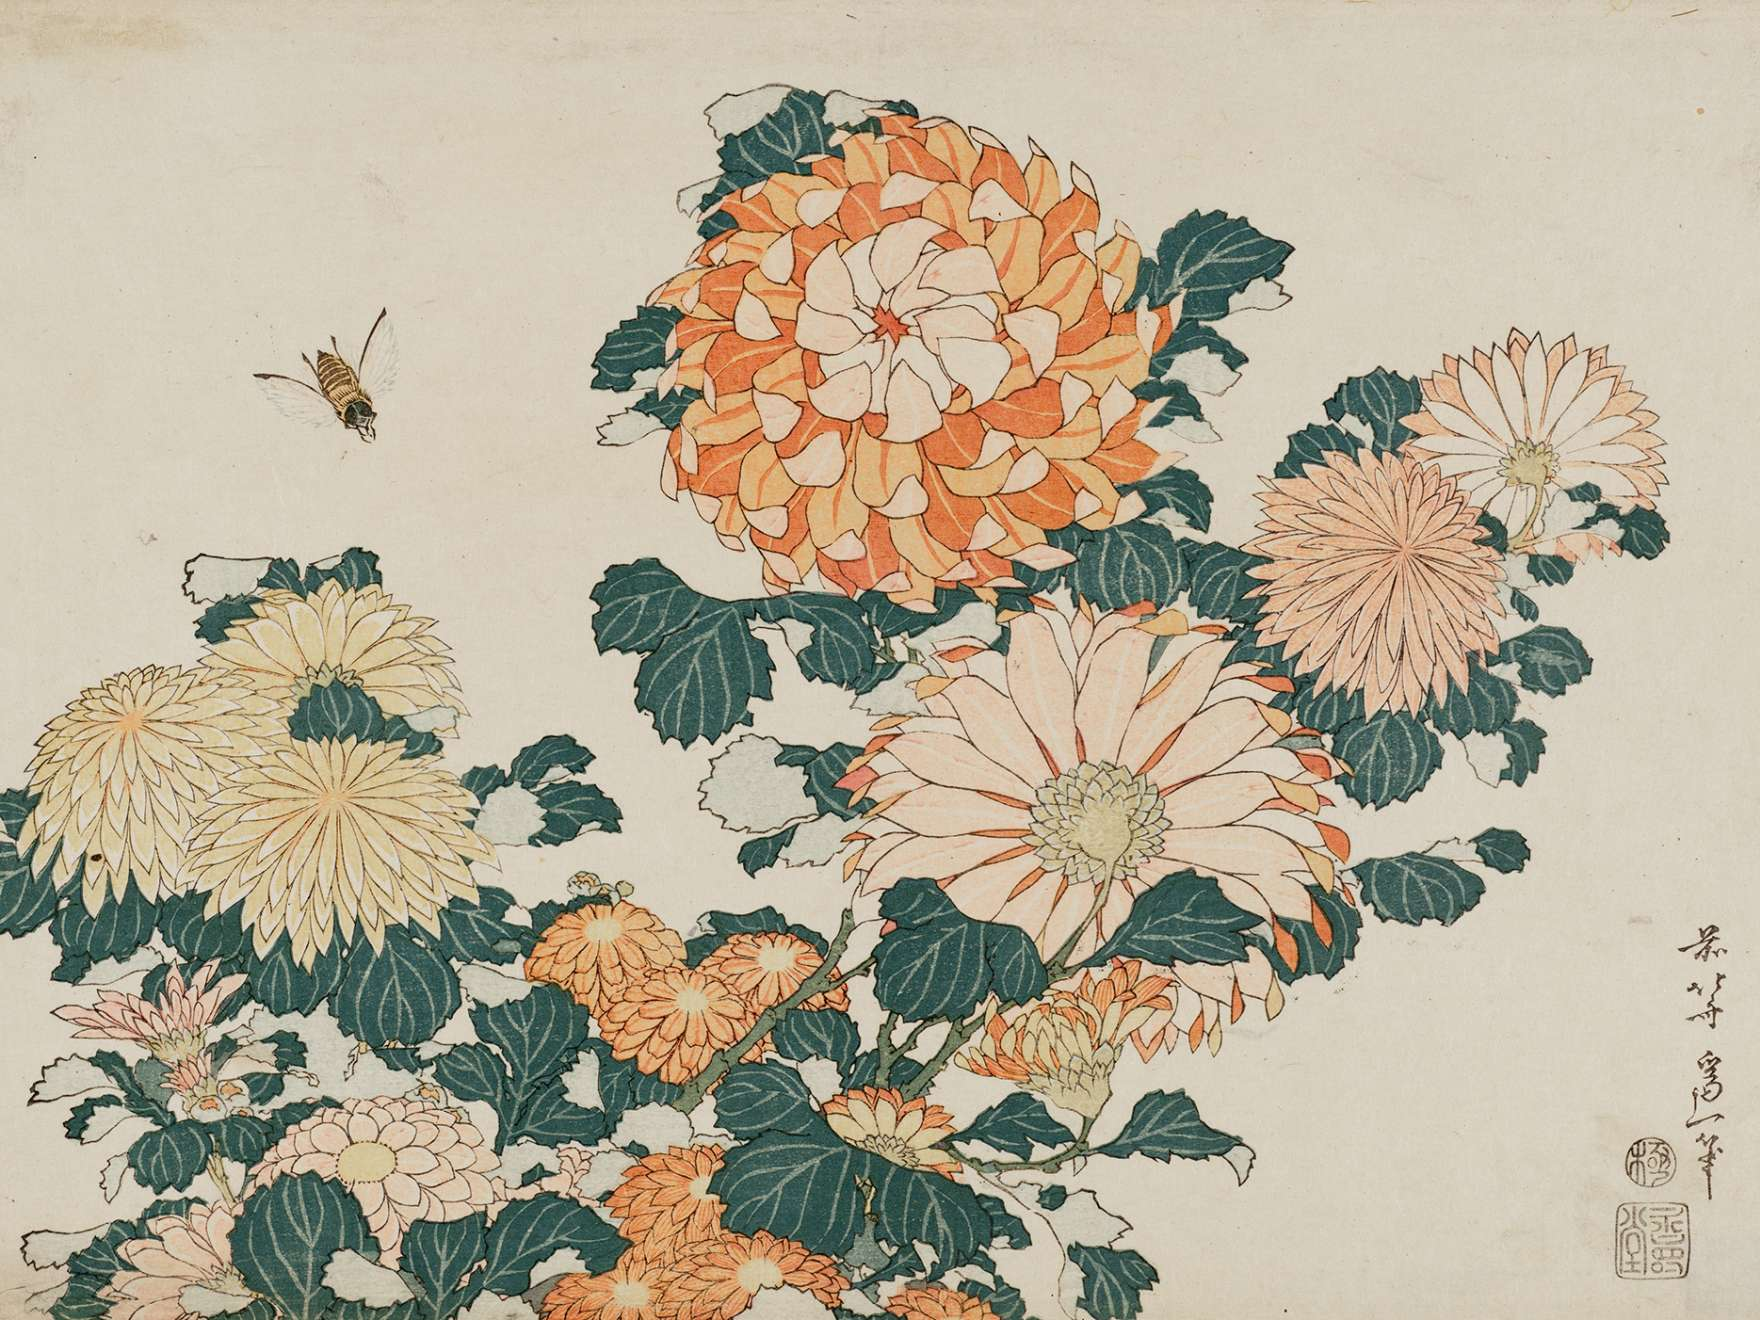 Katushika Hokusai, Chrysanthemums and Horsefly, from an untitled series known as Large Flowers, about 1833–34. Woodblock print (nishiki-e); ink and color on paper. William Sturgis Bigelow Collection.